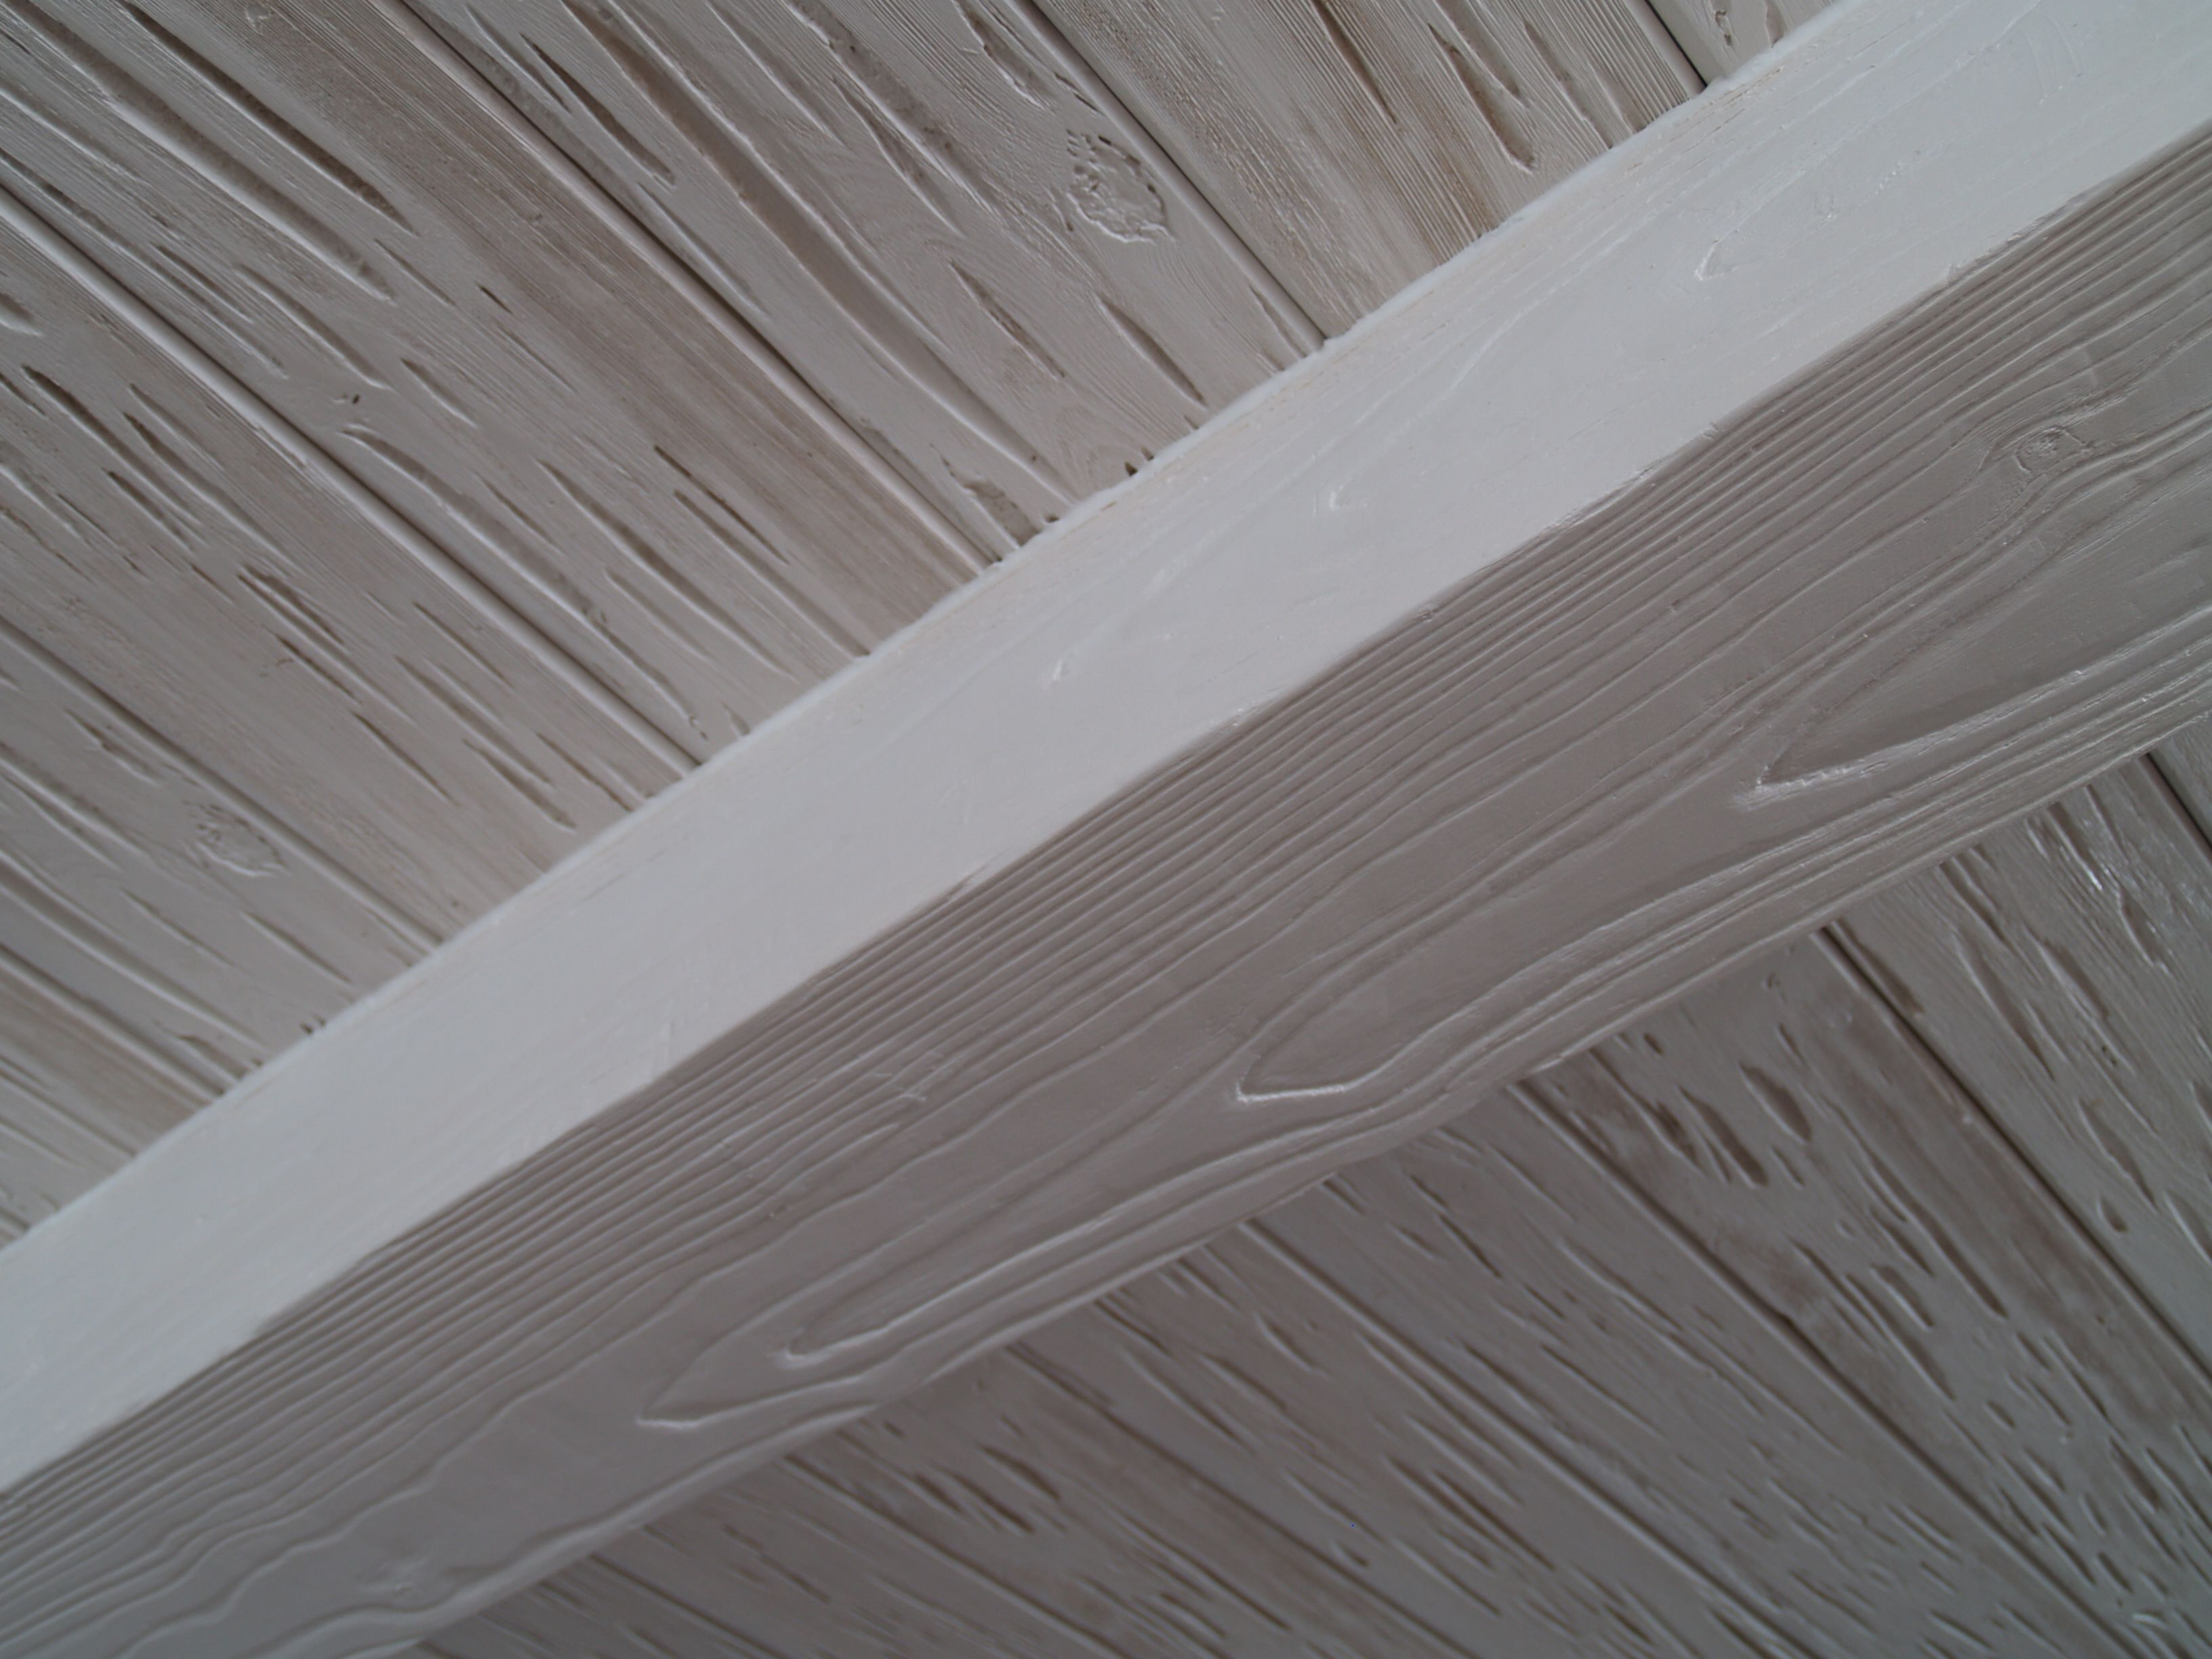 Related Image Faux Wood Beams Styrofoam Ceiling Tiles Wood Beams